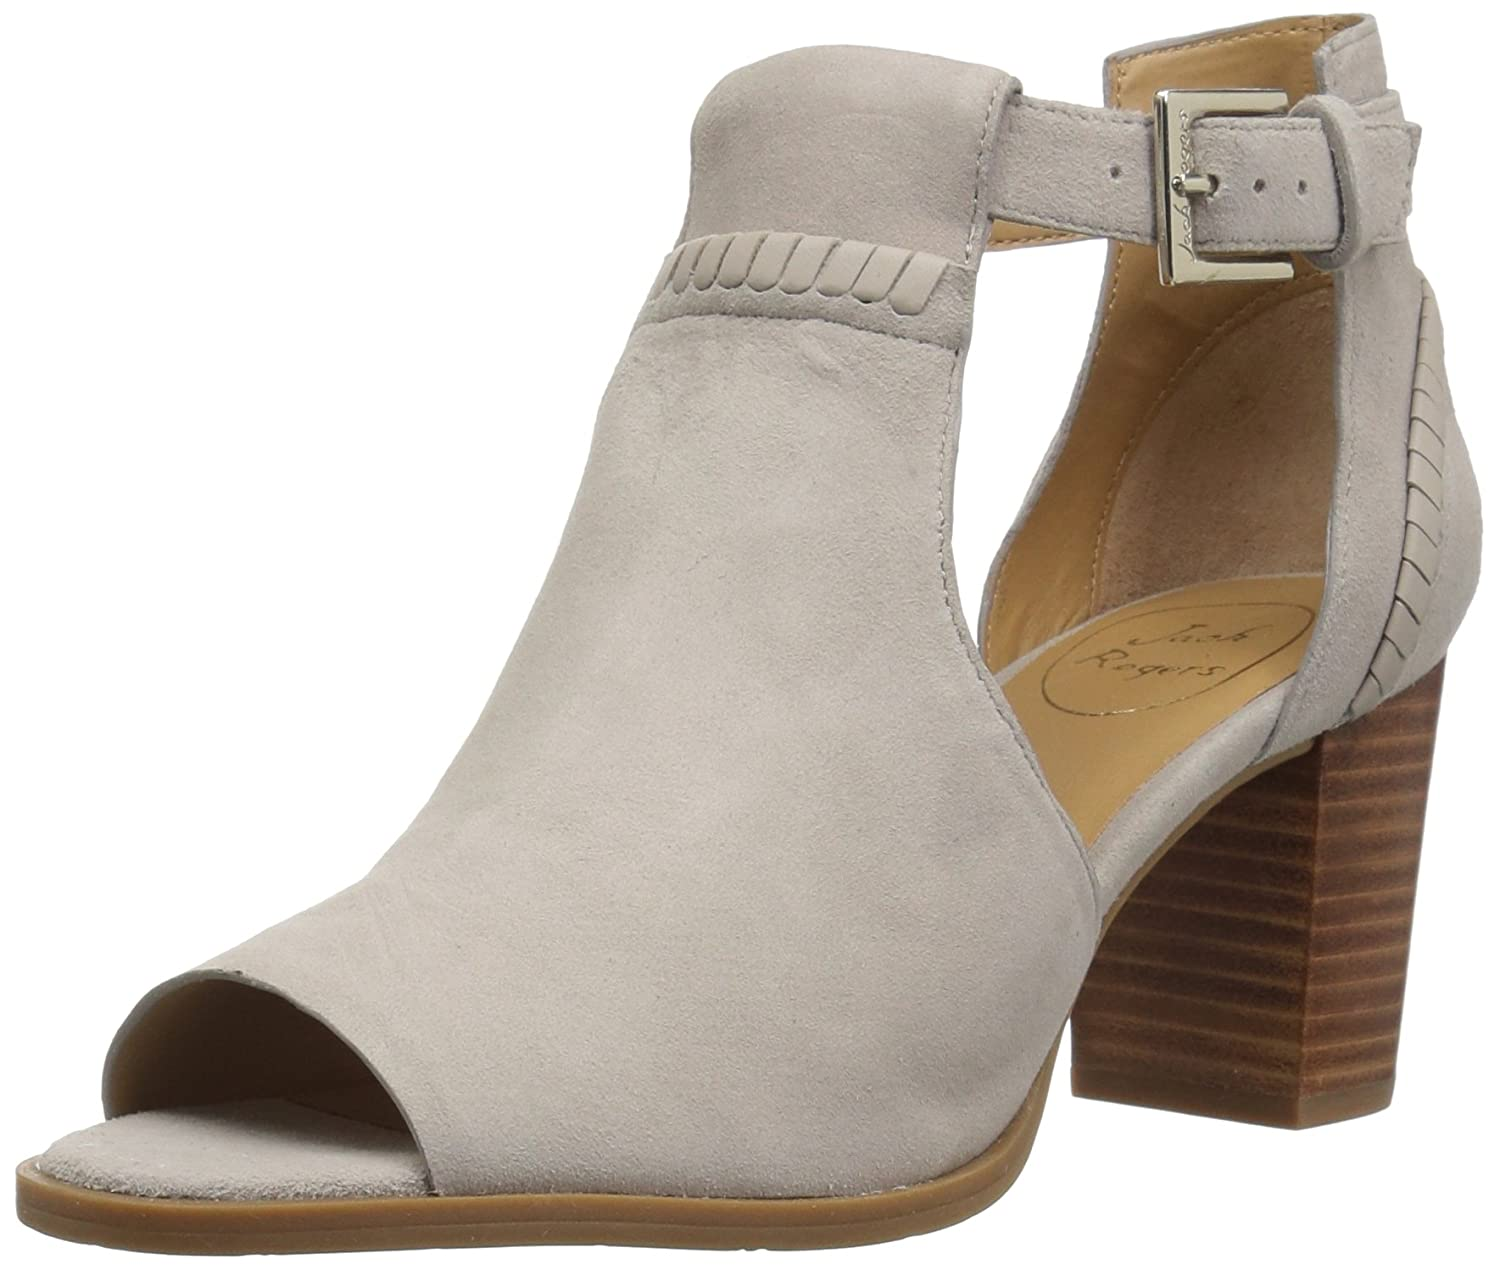 Jack Rogers Women's Cameron Suede Fashion Boot B078WZ51JV 6.5 M US|Dove Grey Suede